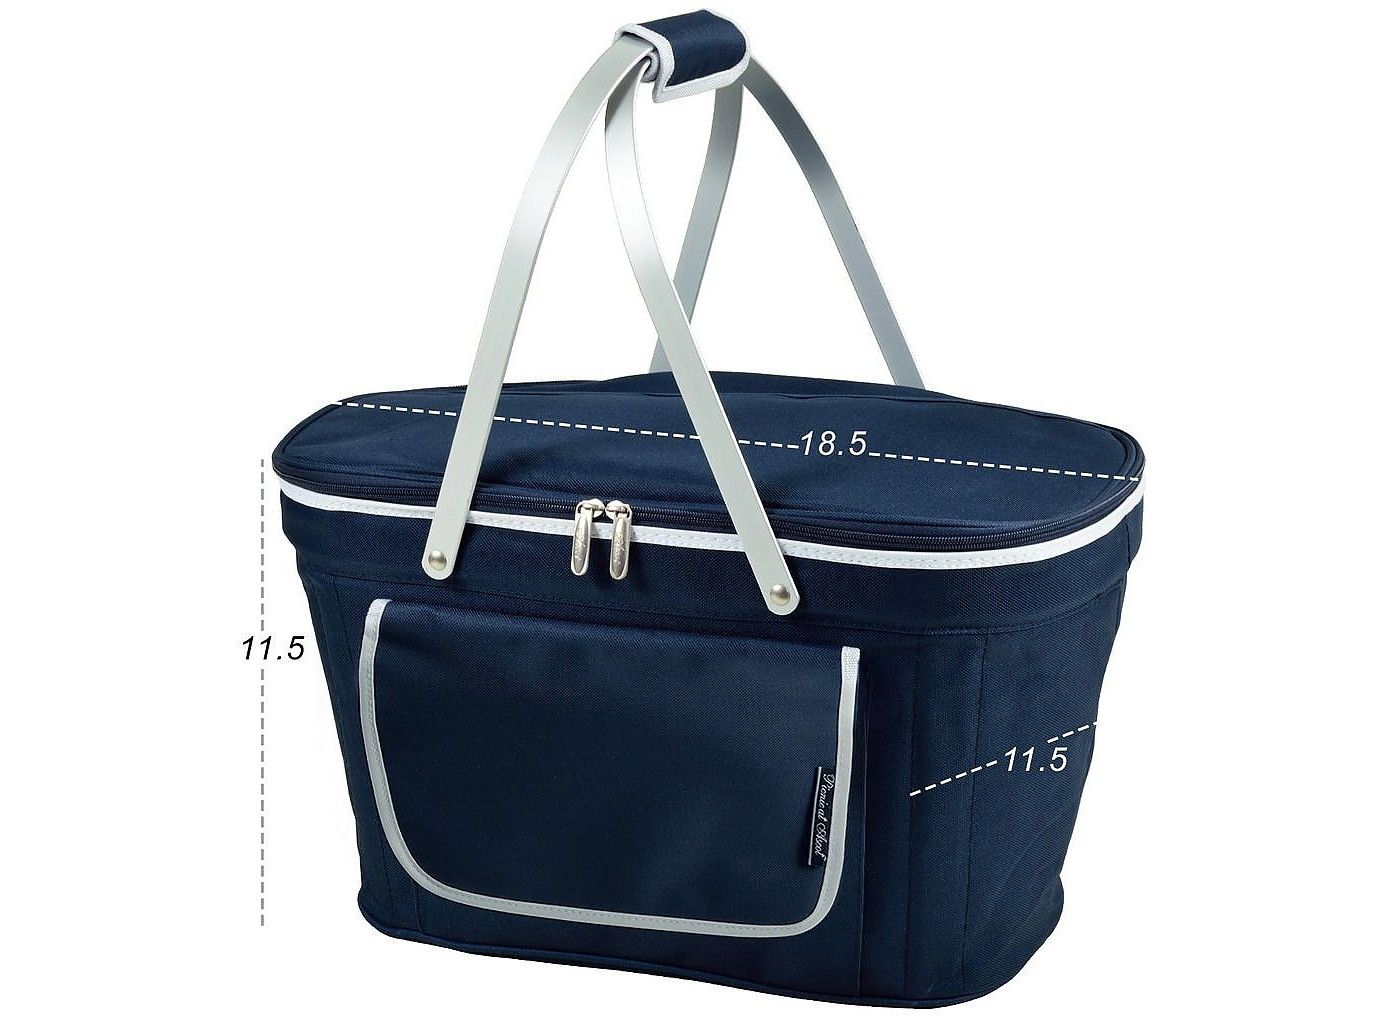 Picnic at ascot large family size insulated folding